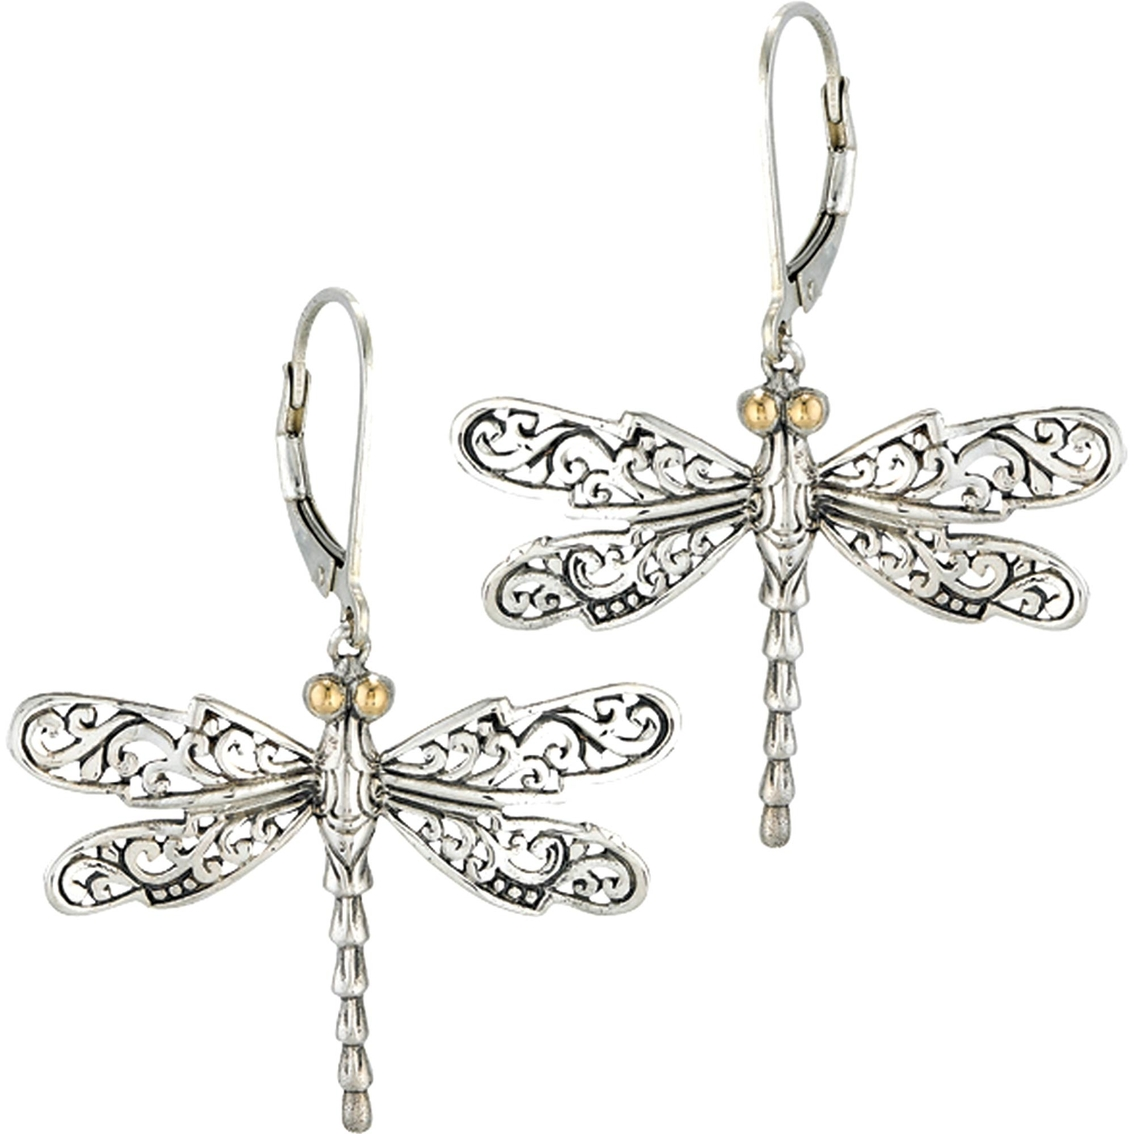 18k Yellow Gold Sterling Silver Bali Design Dragonfly Earrings With White Topaz